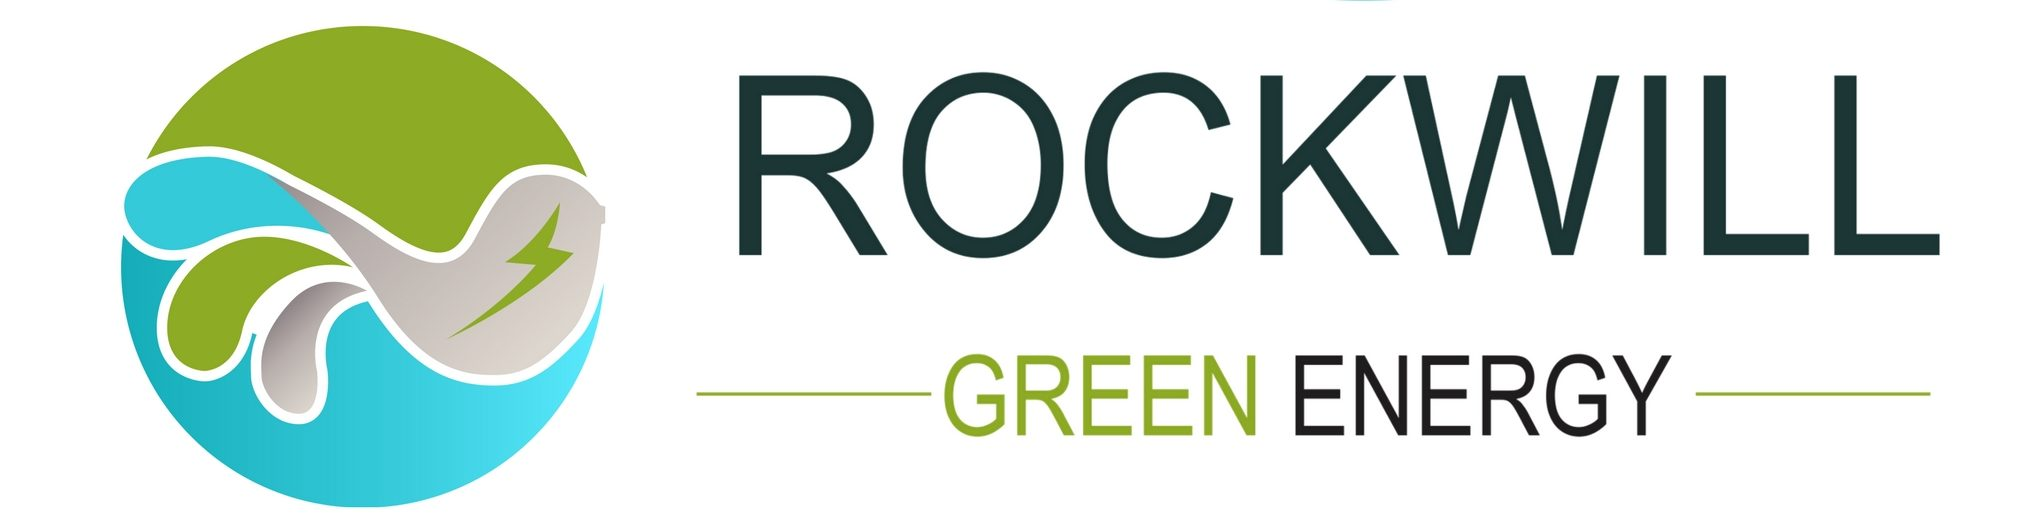 Rockwill Green Energy East Africa Limited